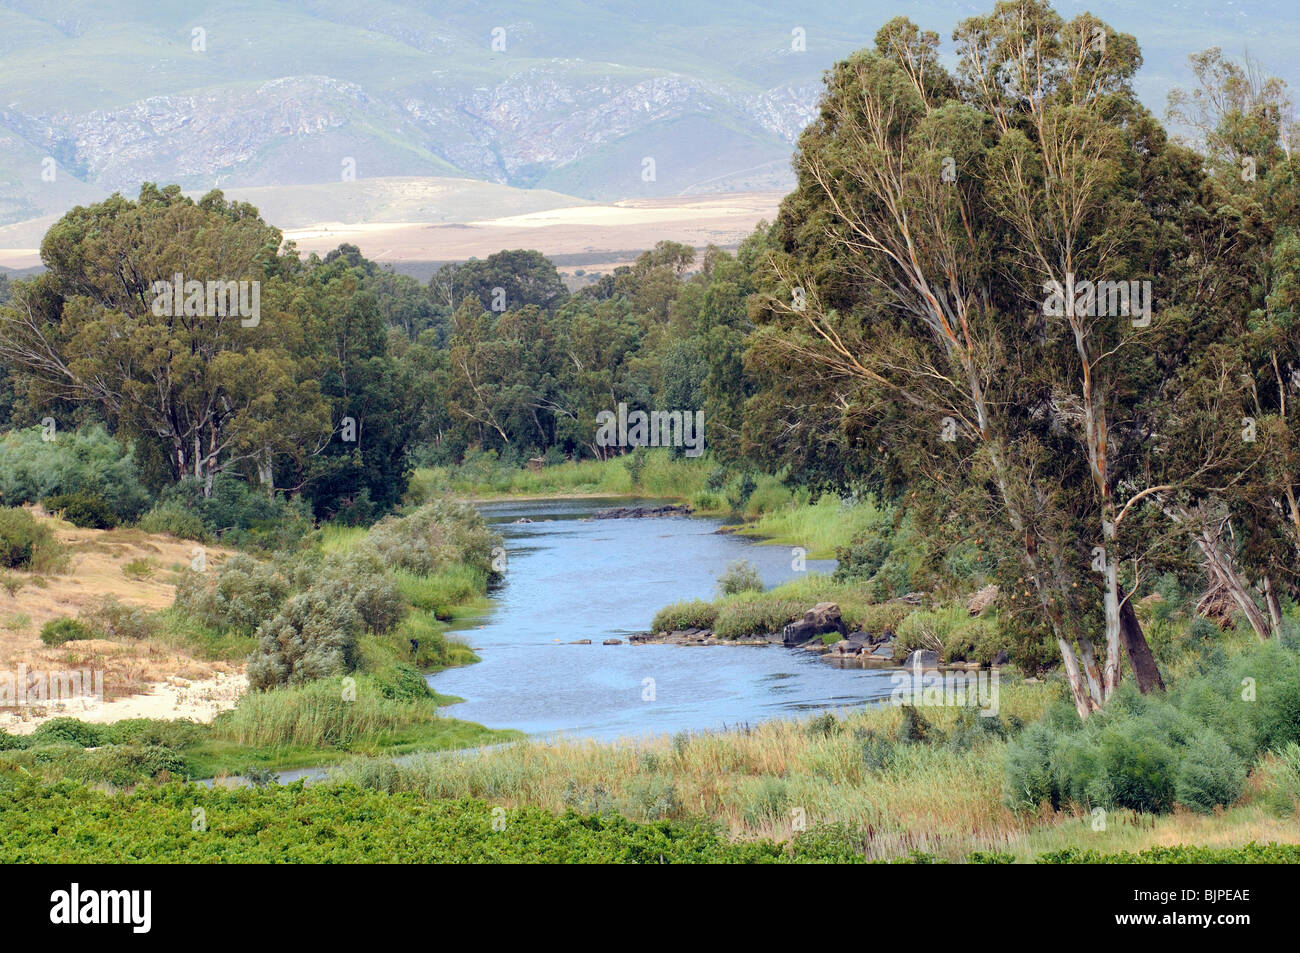 Breede River and the Riviersonderend Mountains a wine producing area near Robertson in the western Cape South Africa - Stock Image